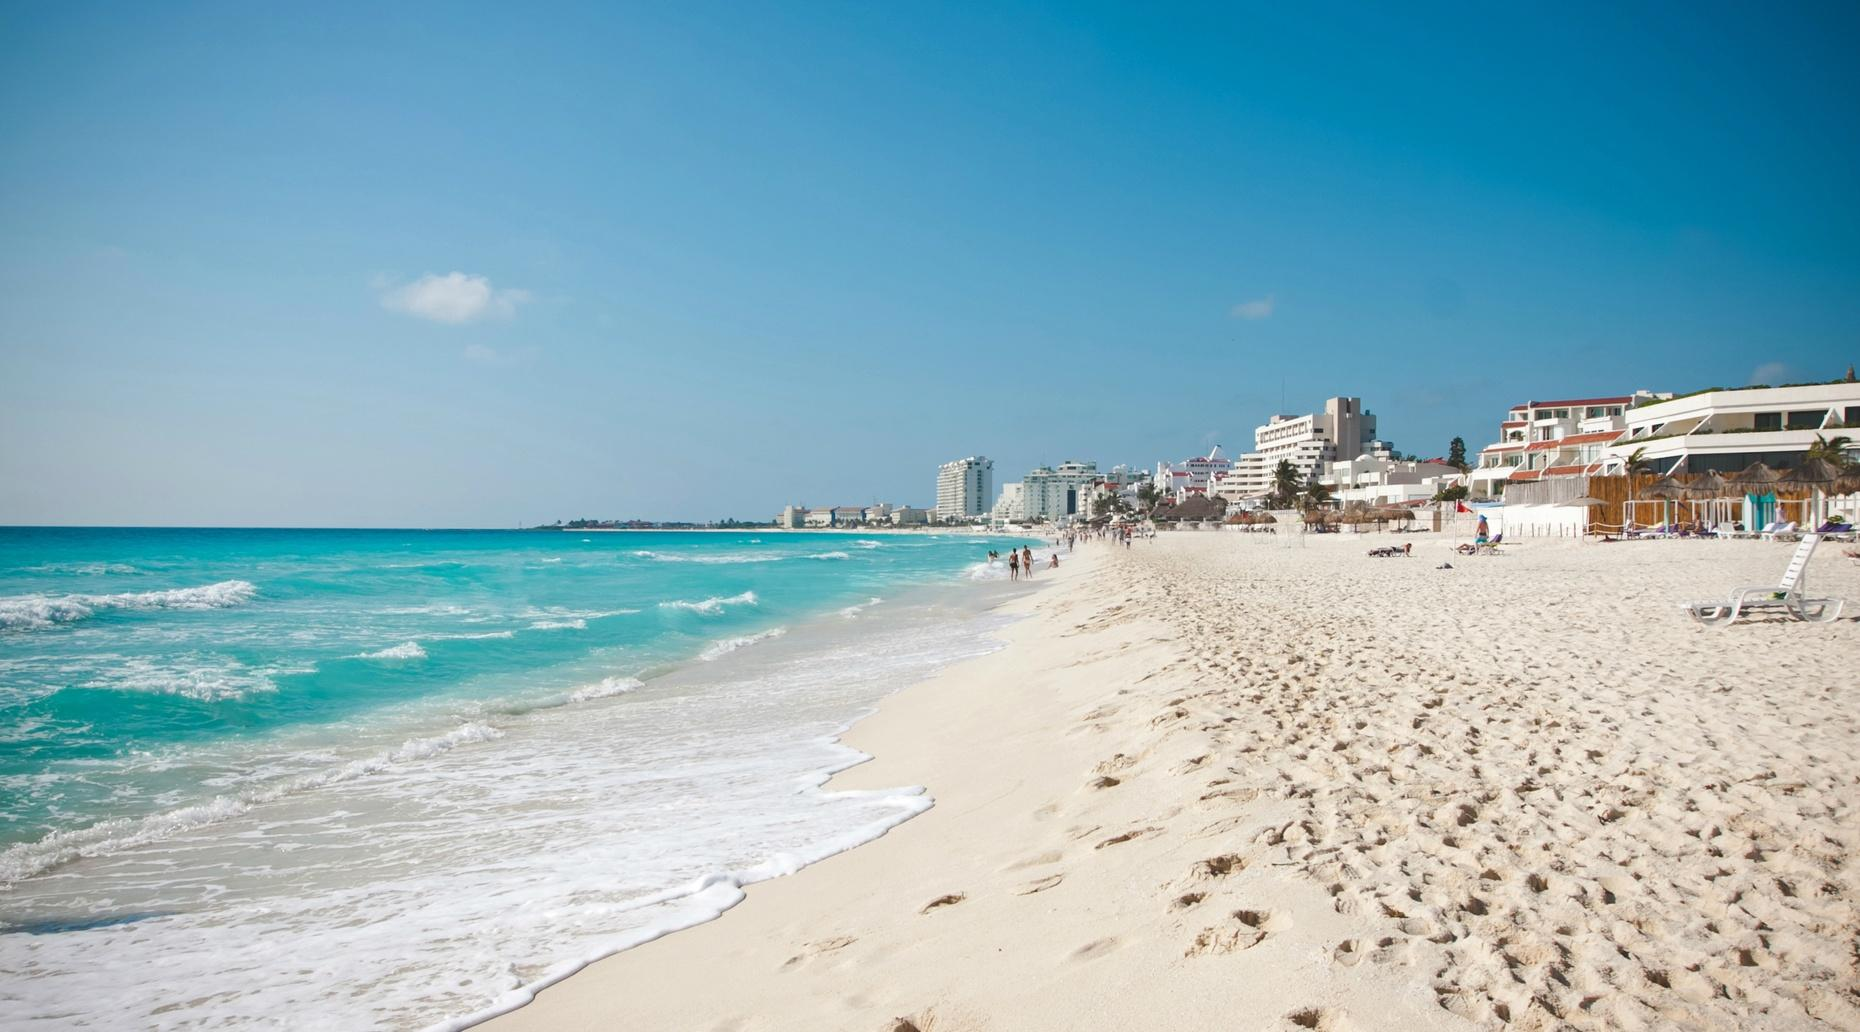 Private Transfer from Cancun to Playa del Carmen